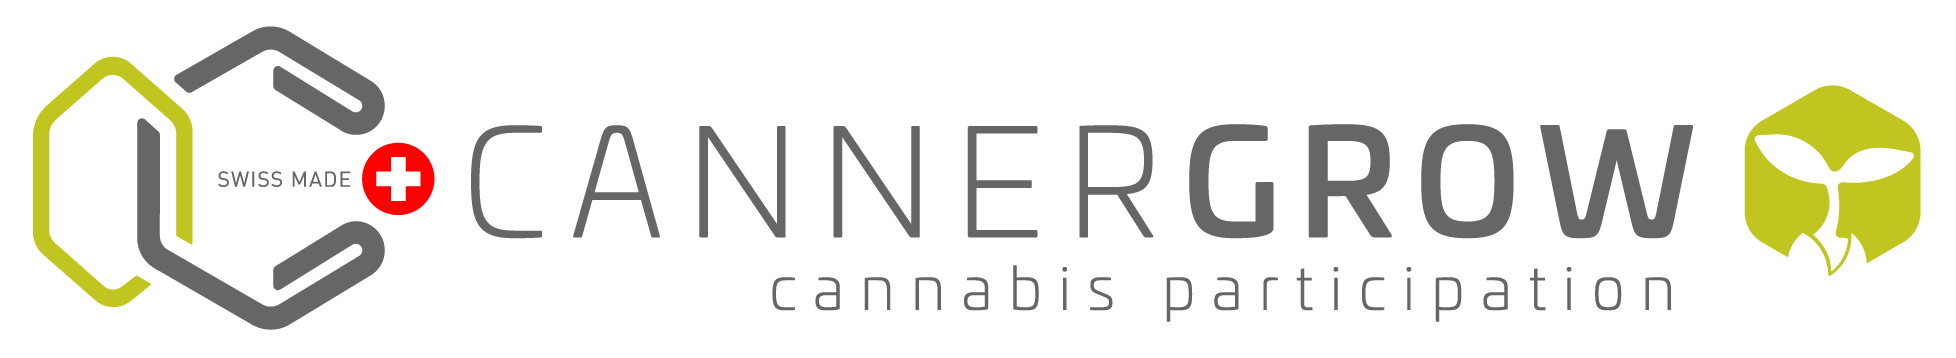 cannergrow-cannerald-image